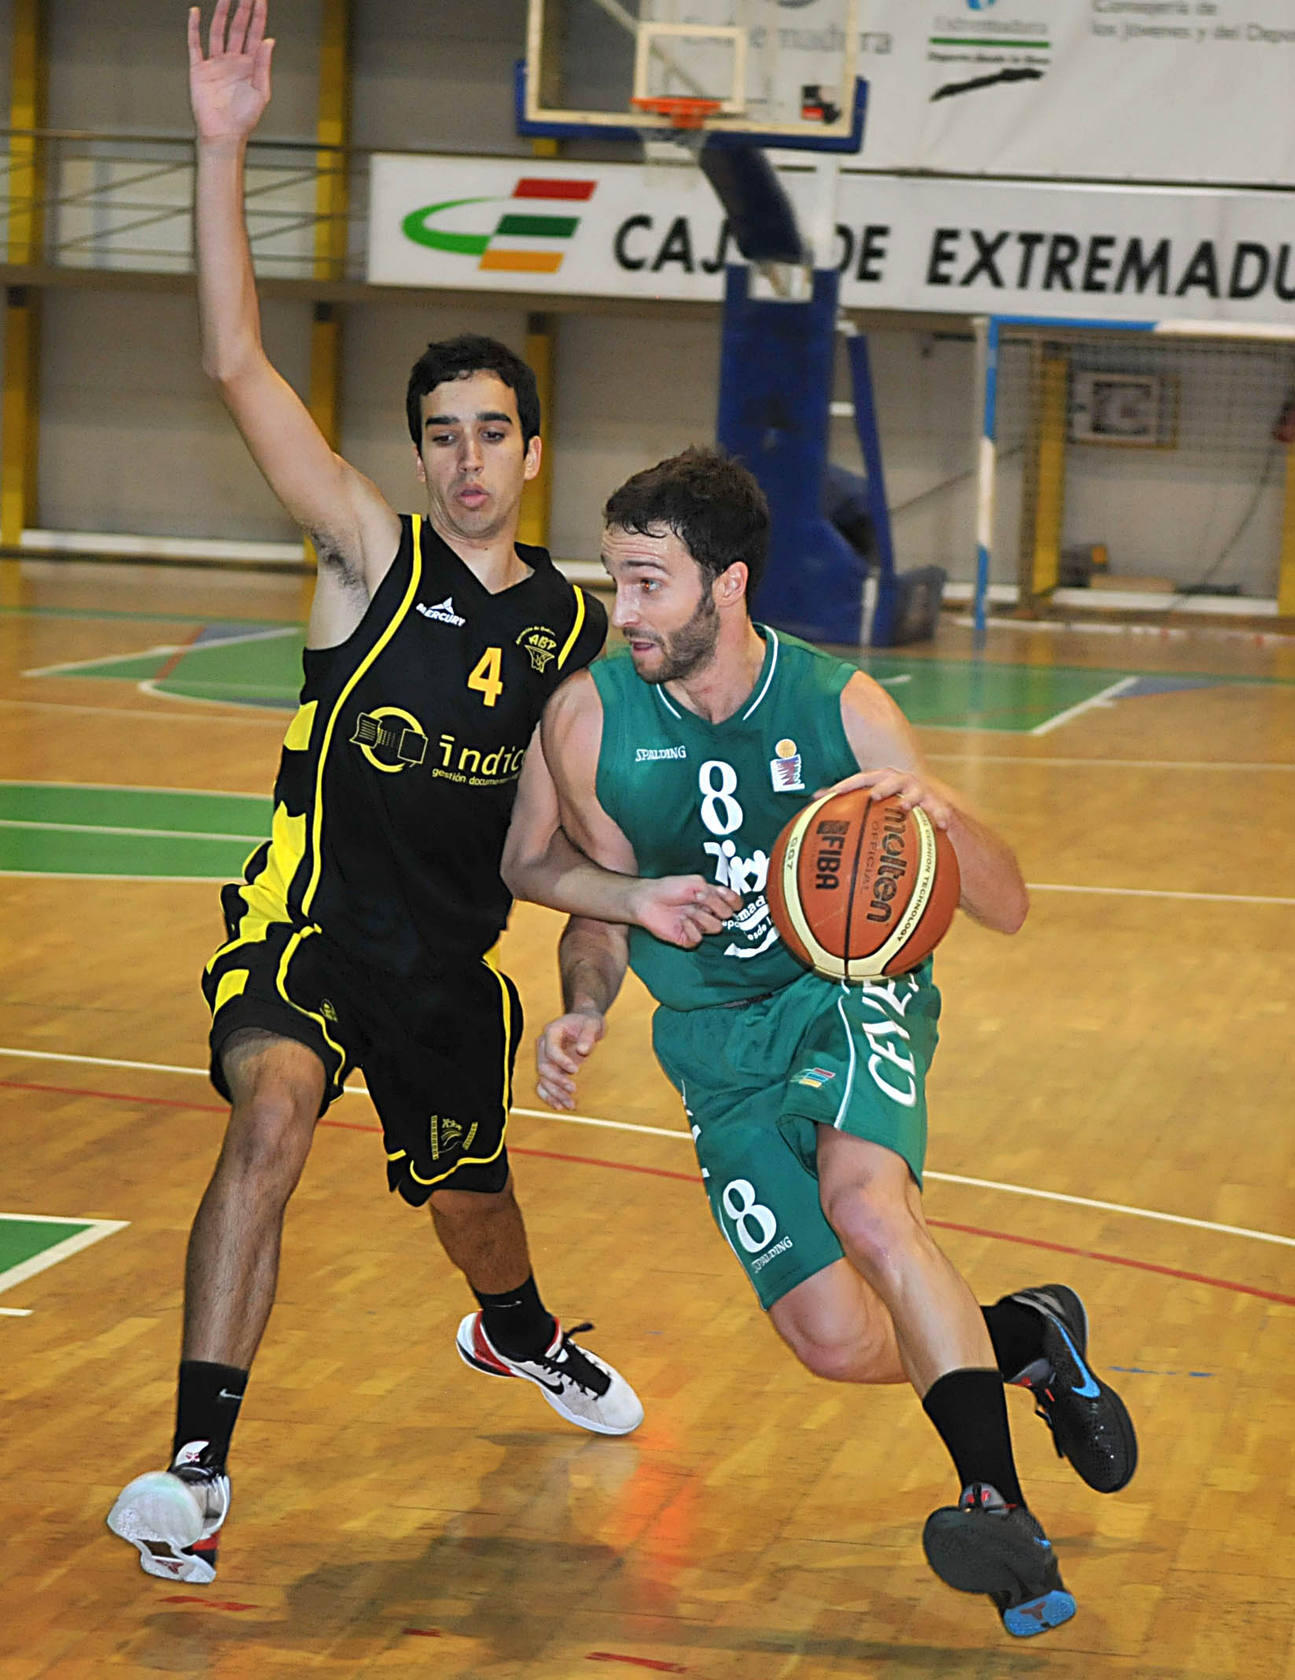 Plasencia se lleva el derbi de LEB Plata ante la ABP Badajoz